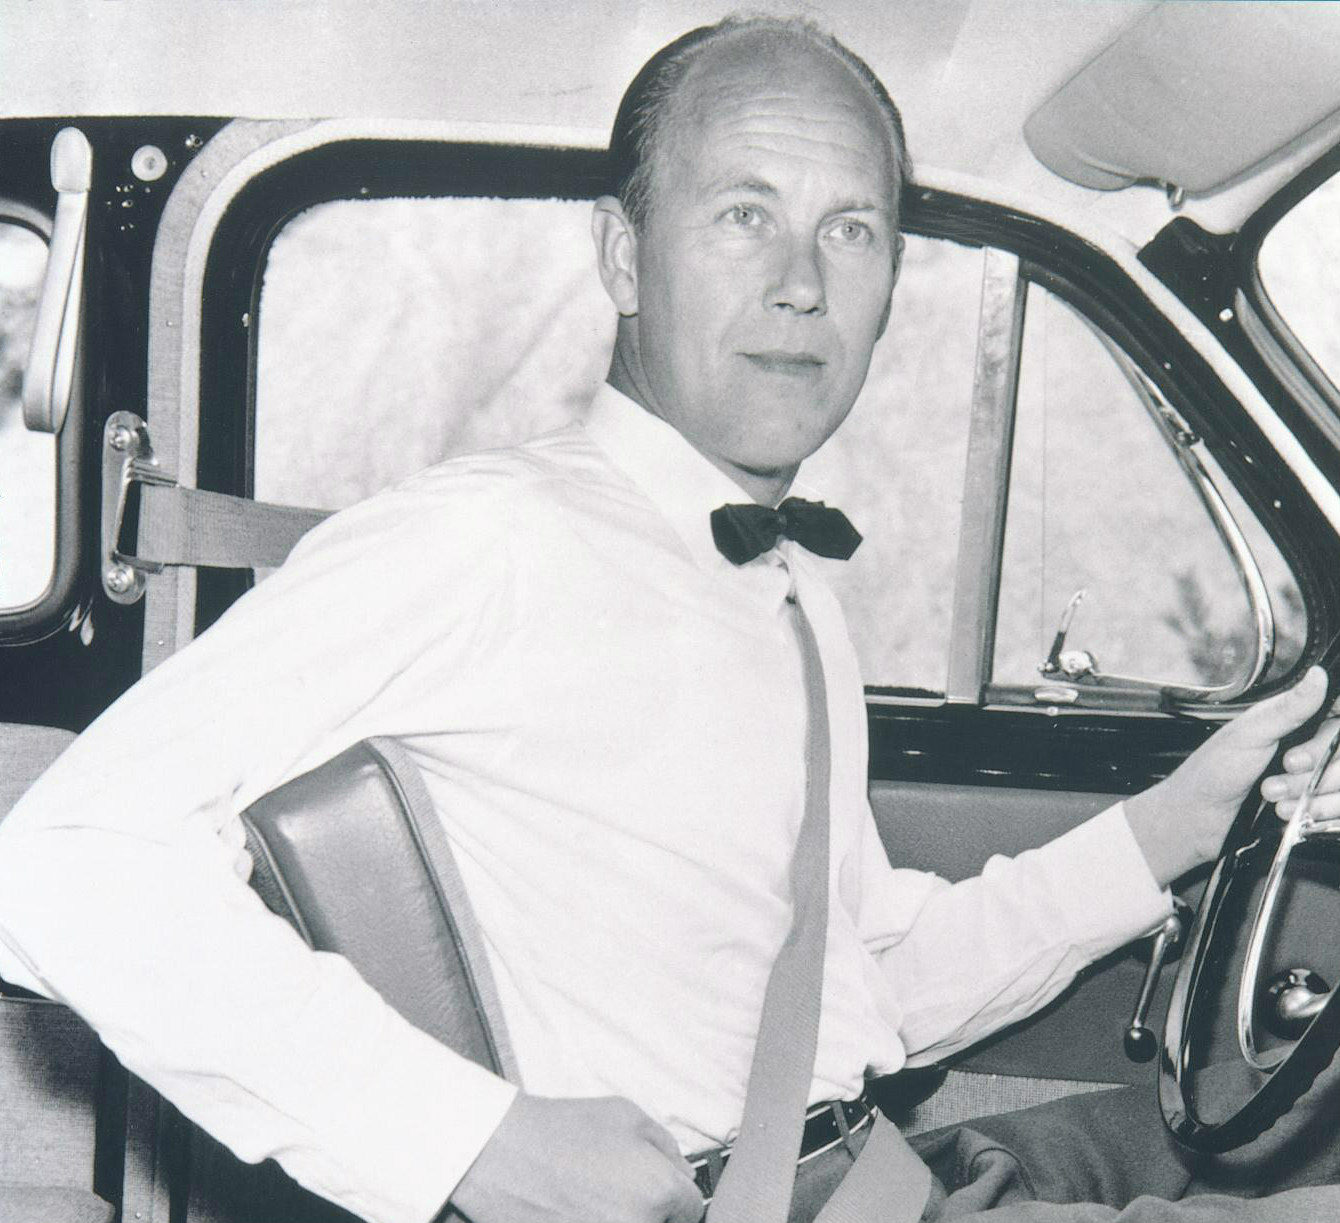 This Swedish engineer invented the three-point seatbelt; what was his name?